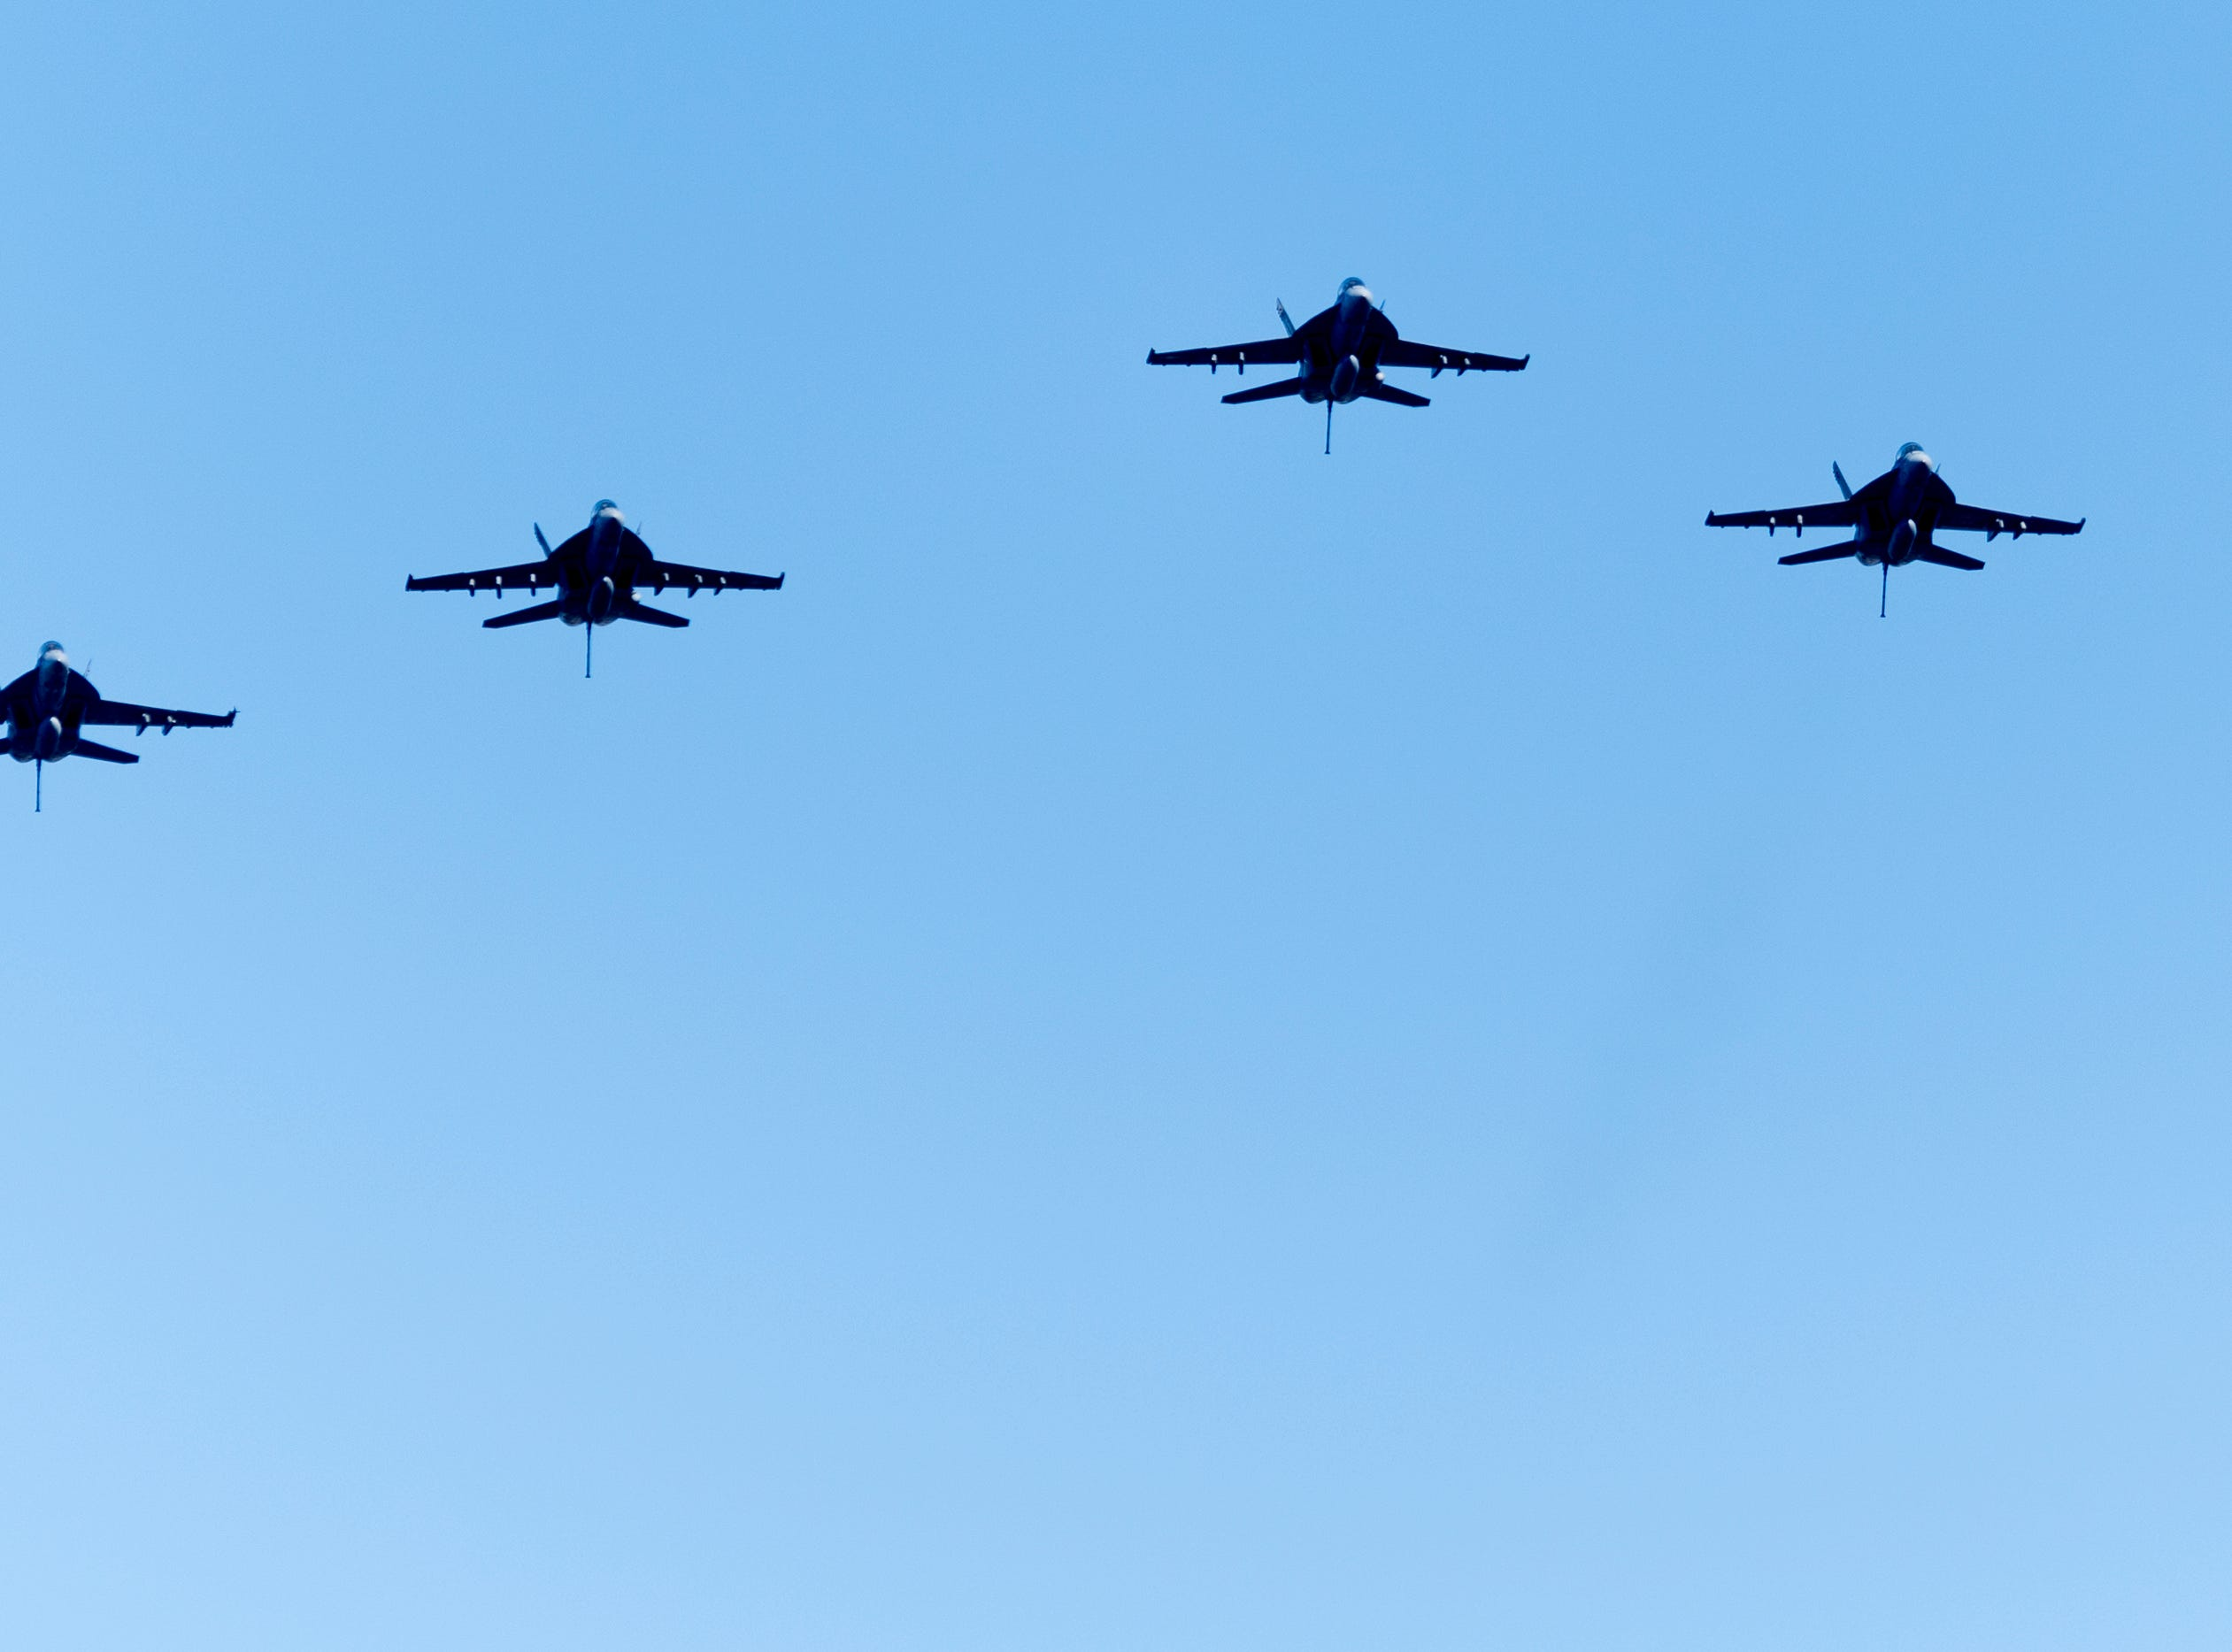 Four fighter jets fly above a graveside service for Rosemary Mariner, the US Navy's first female fighter pilot, at New Loyston Cemetery in Maynardville, Tennessee on Saturday, February 2, 2019. The jets were flown by four female fighter pilots, and was the first all-female flyover by the Navy.